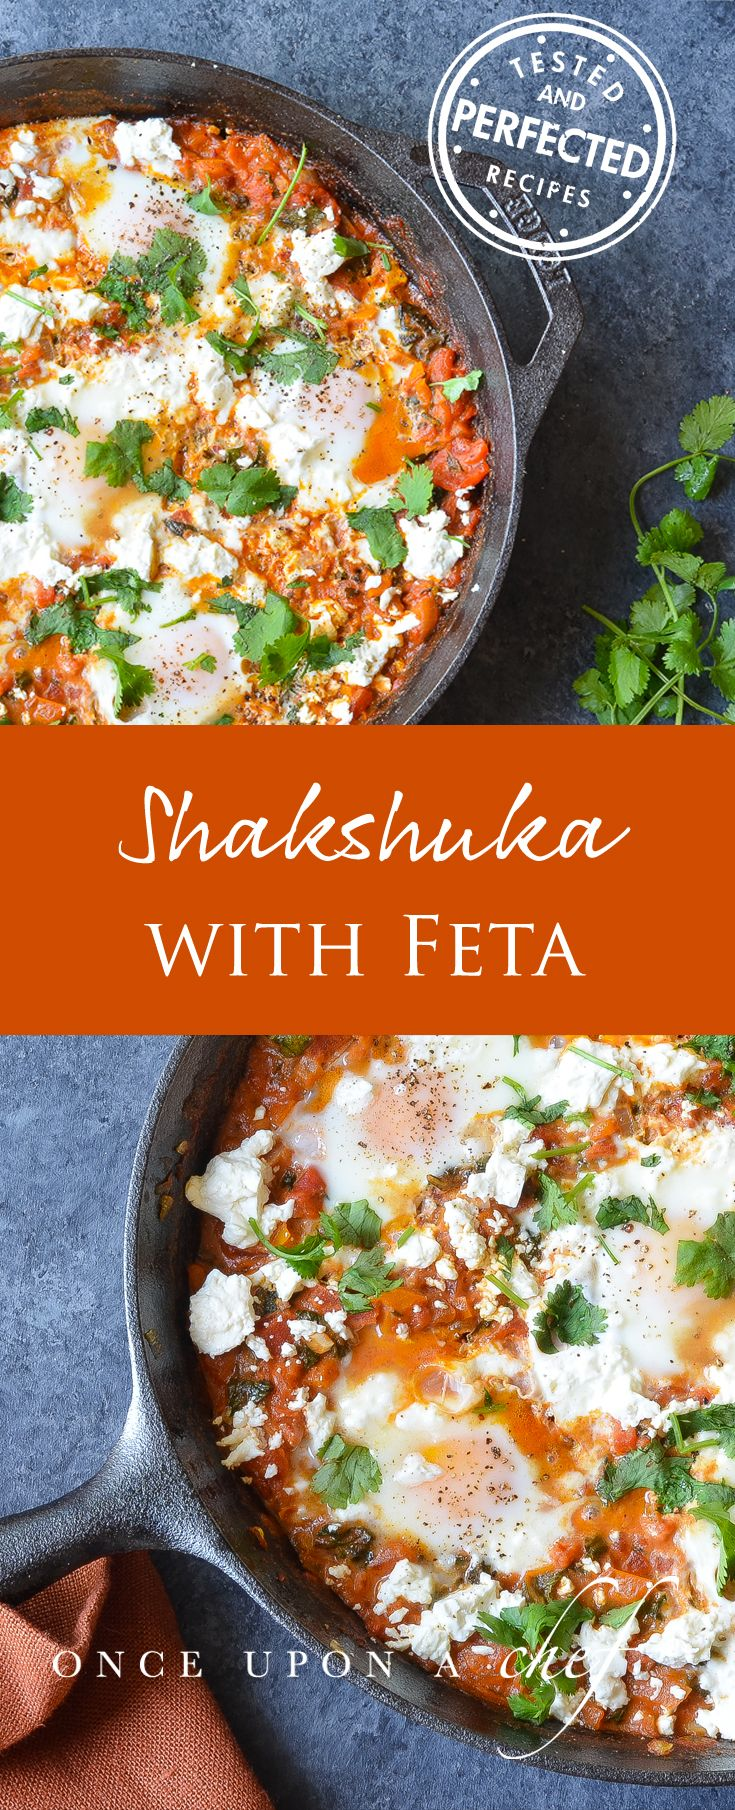 Shakshuka- One of the best things that I ate on my recent trip to Israel was shakshuka, a one-skillet dish of eggs poached in a smoky, spicy, vegetable-laden tomato sauce.